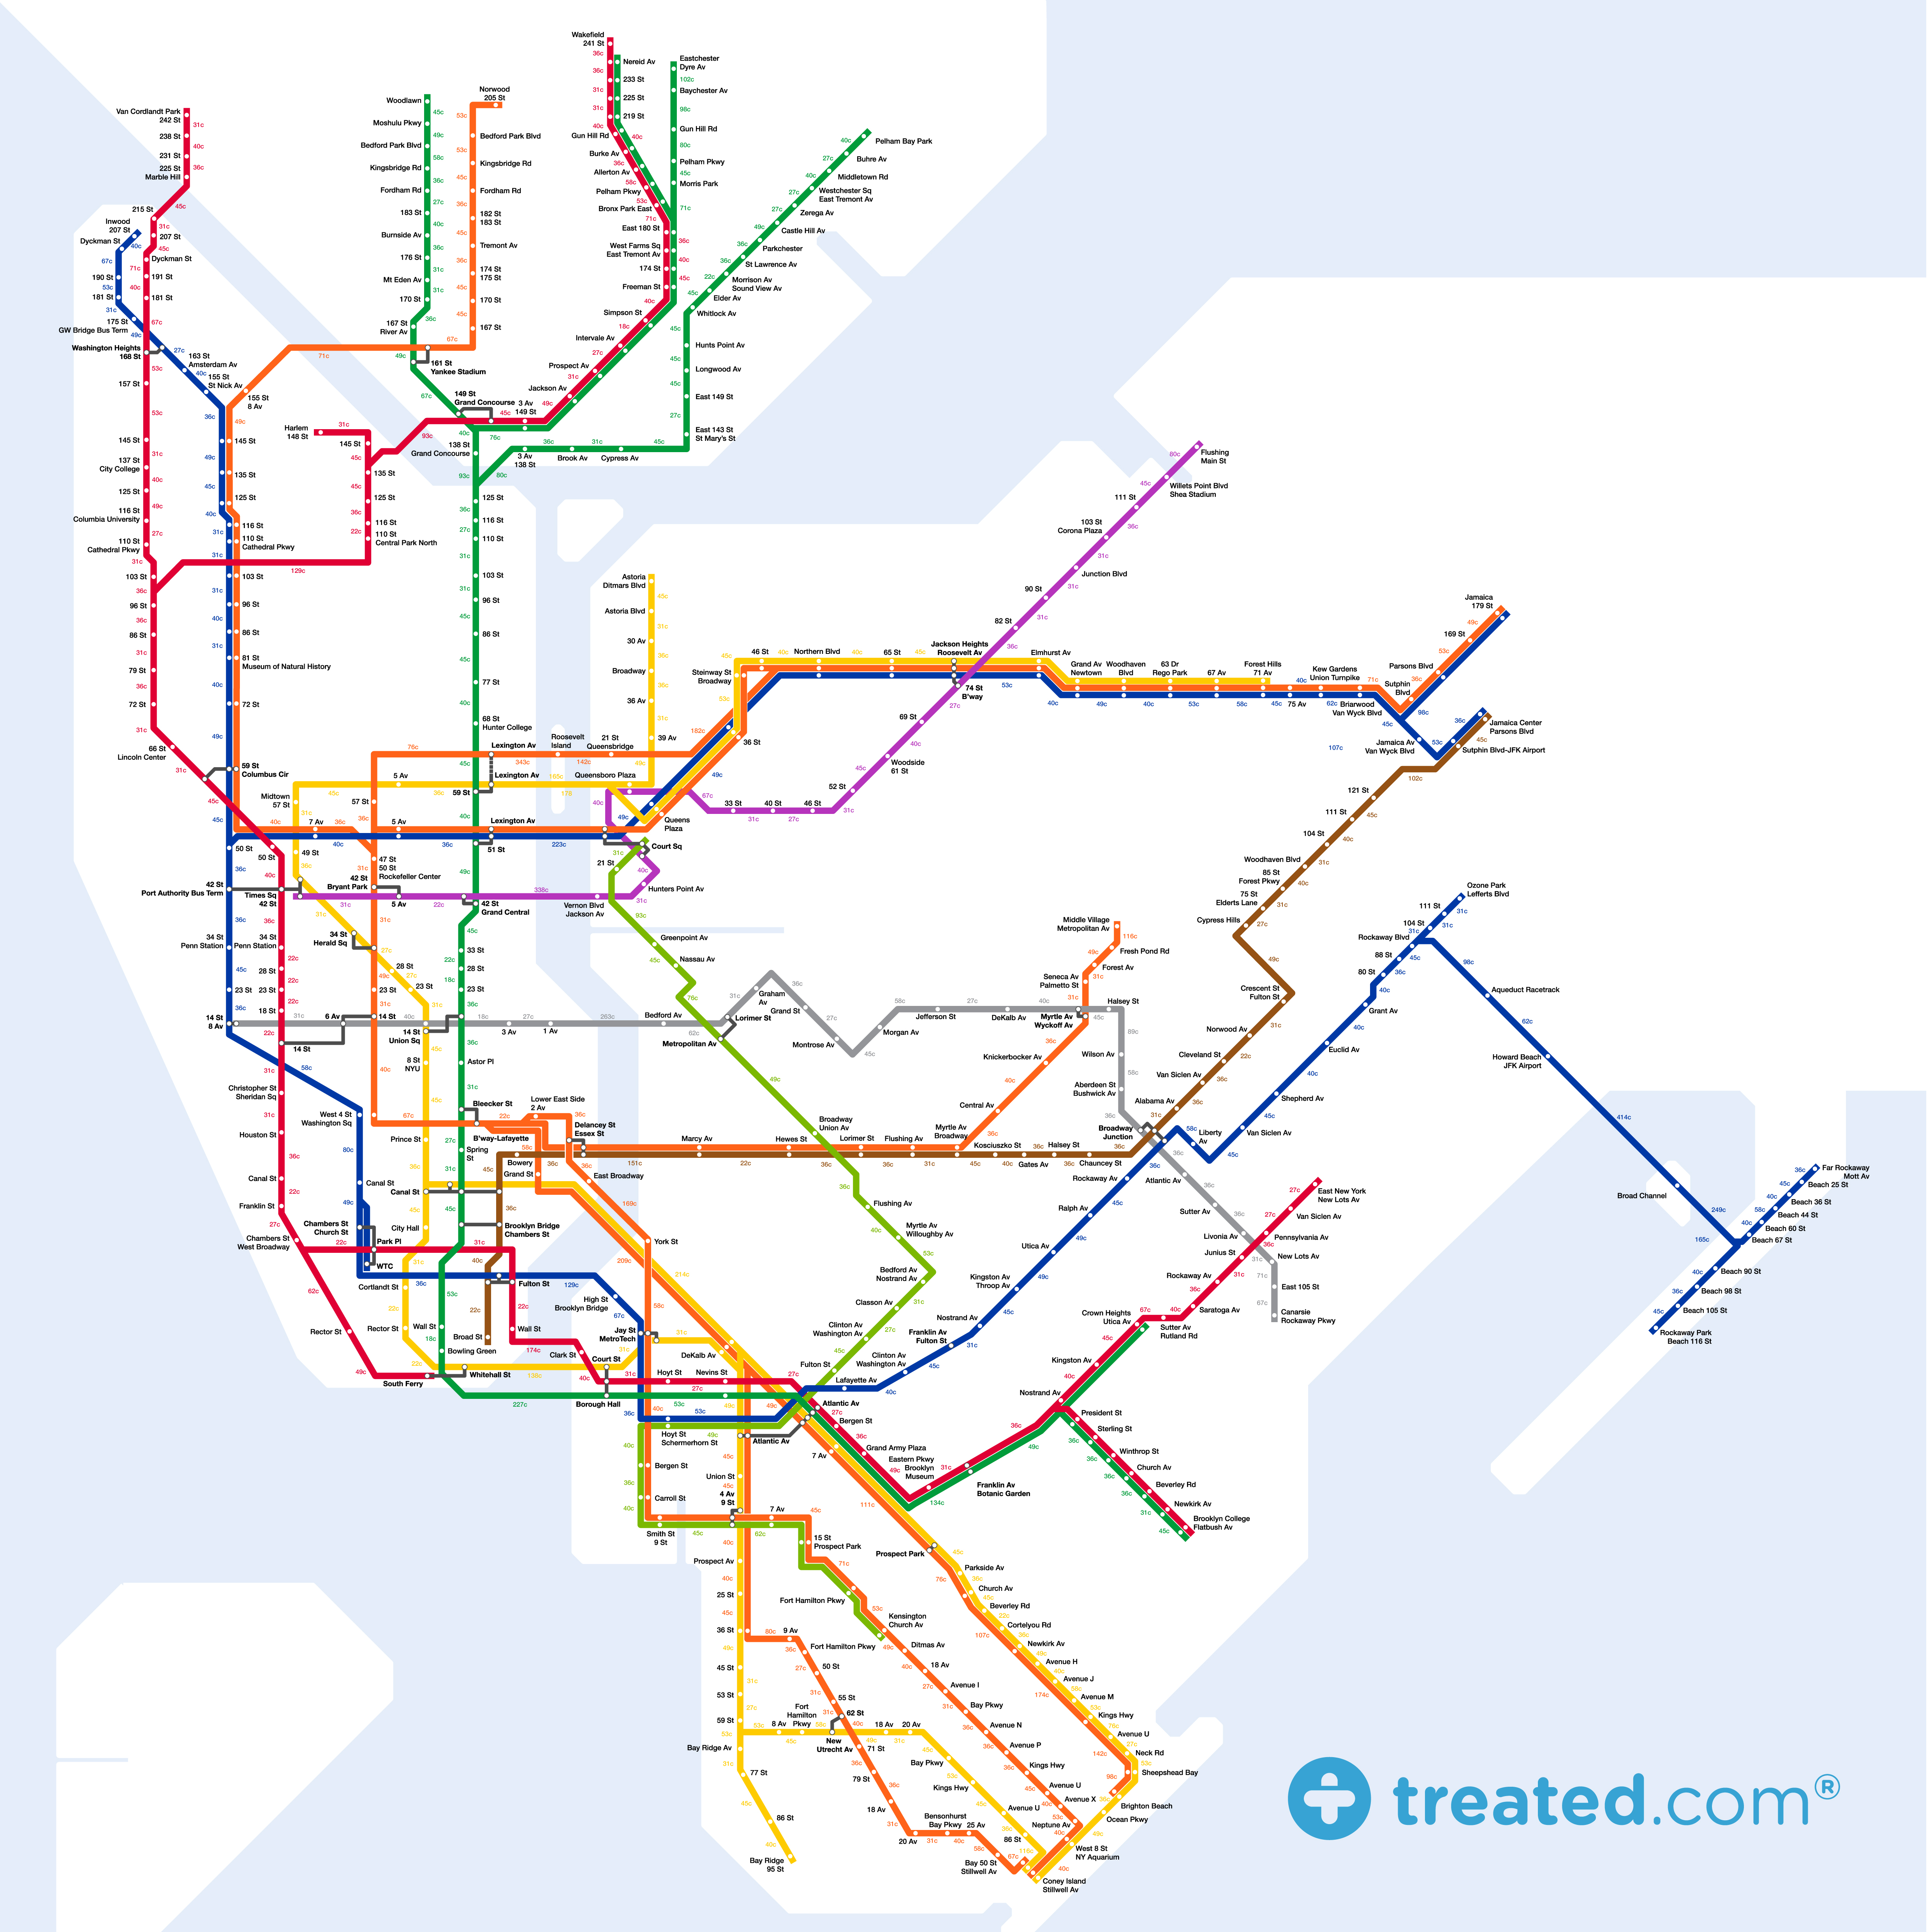 Take The Sidewalk To Work Our New York Subway Map Of Calories